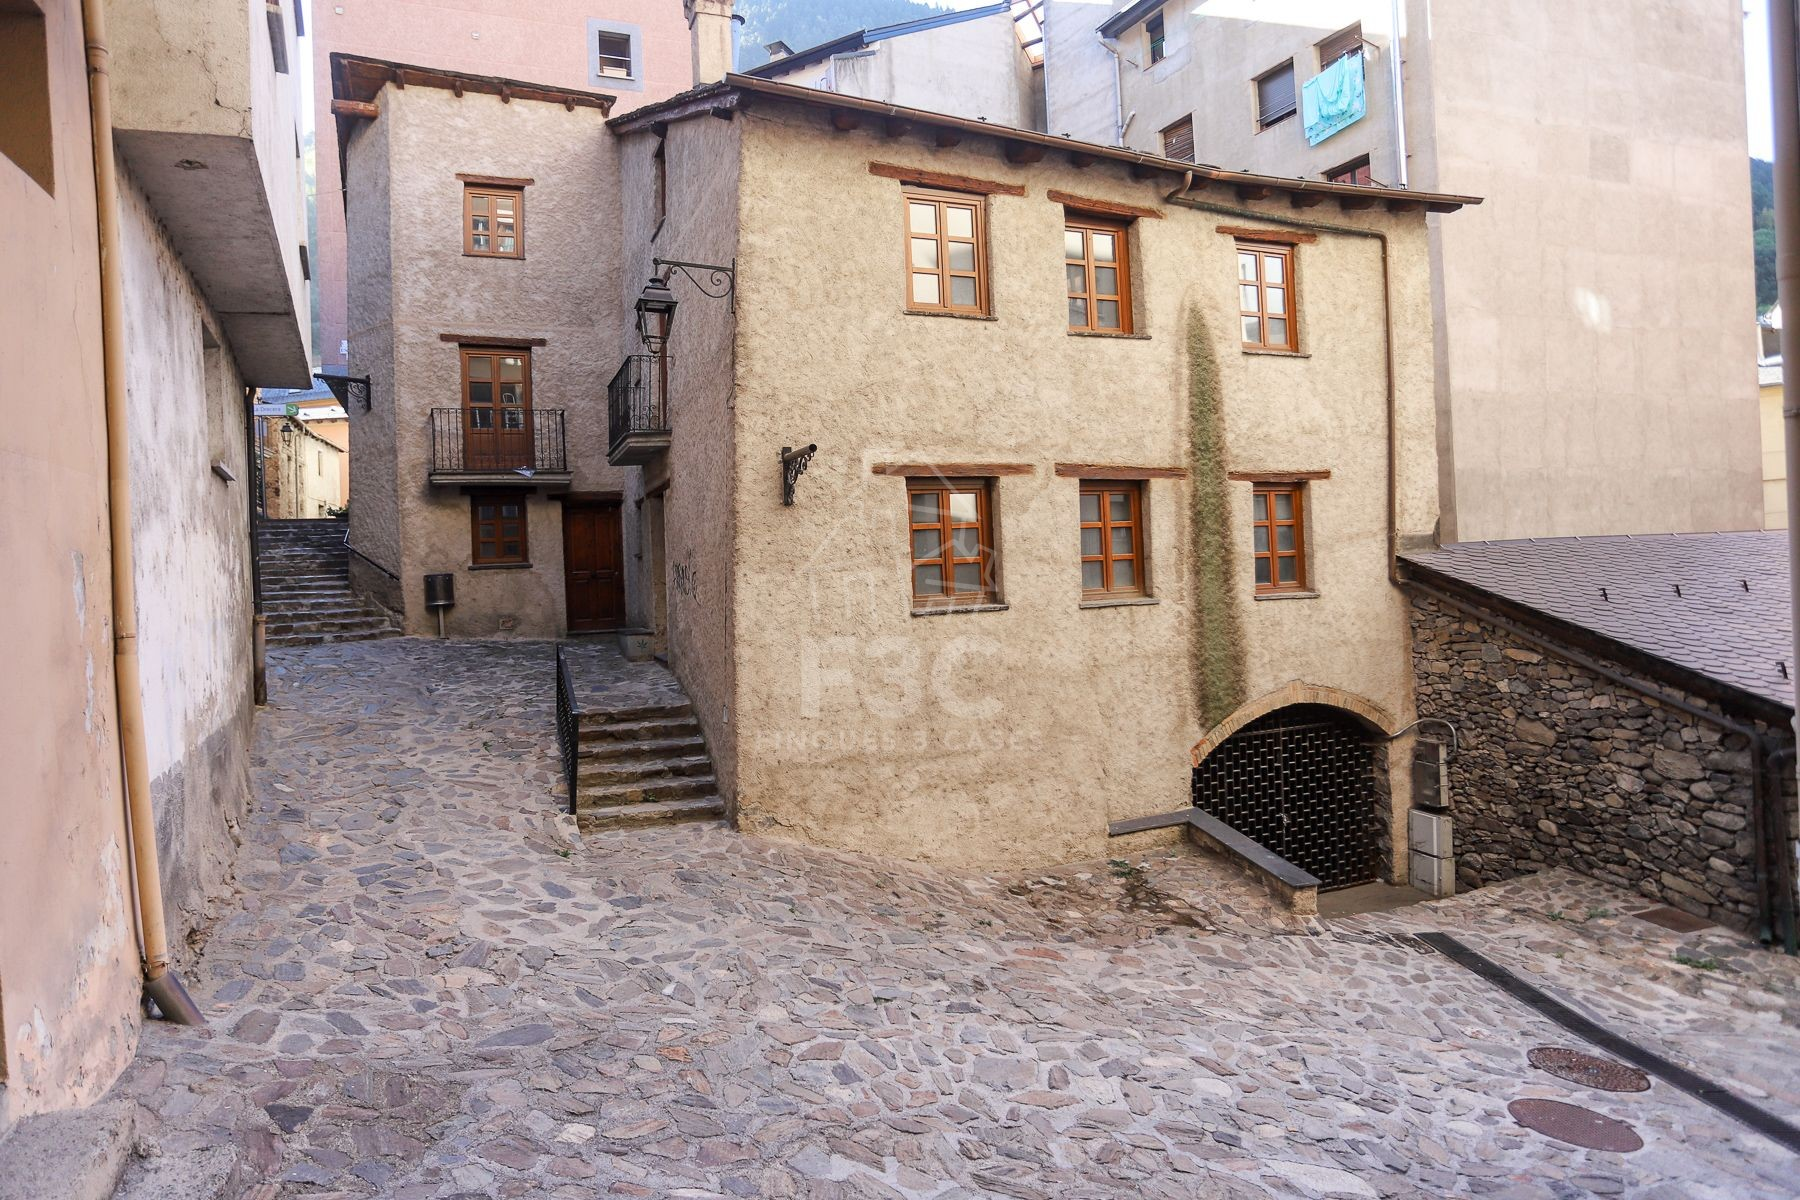 Typical Andorran house for sale in the Historic Center of Engordany.